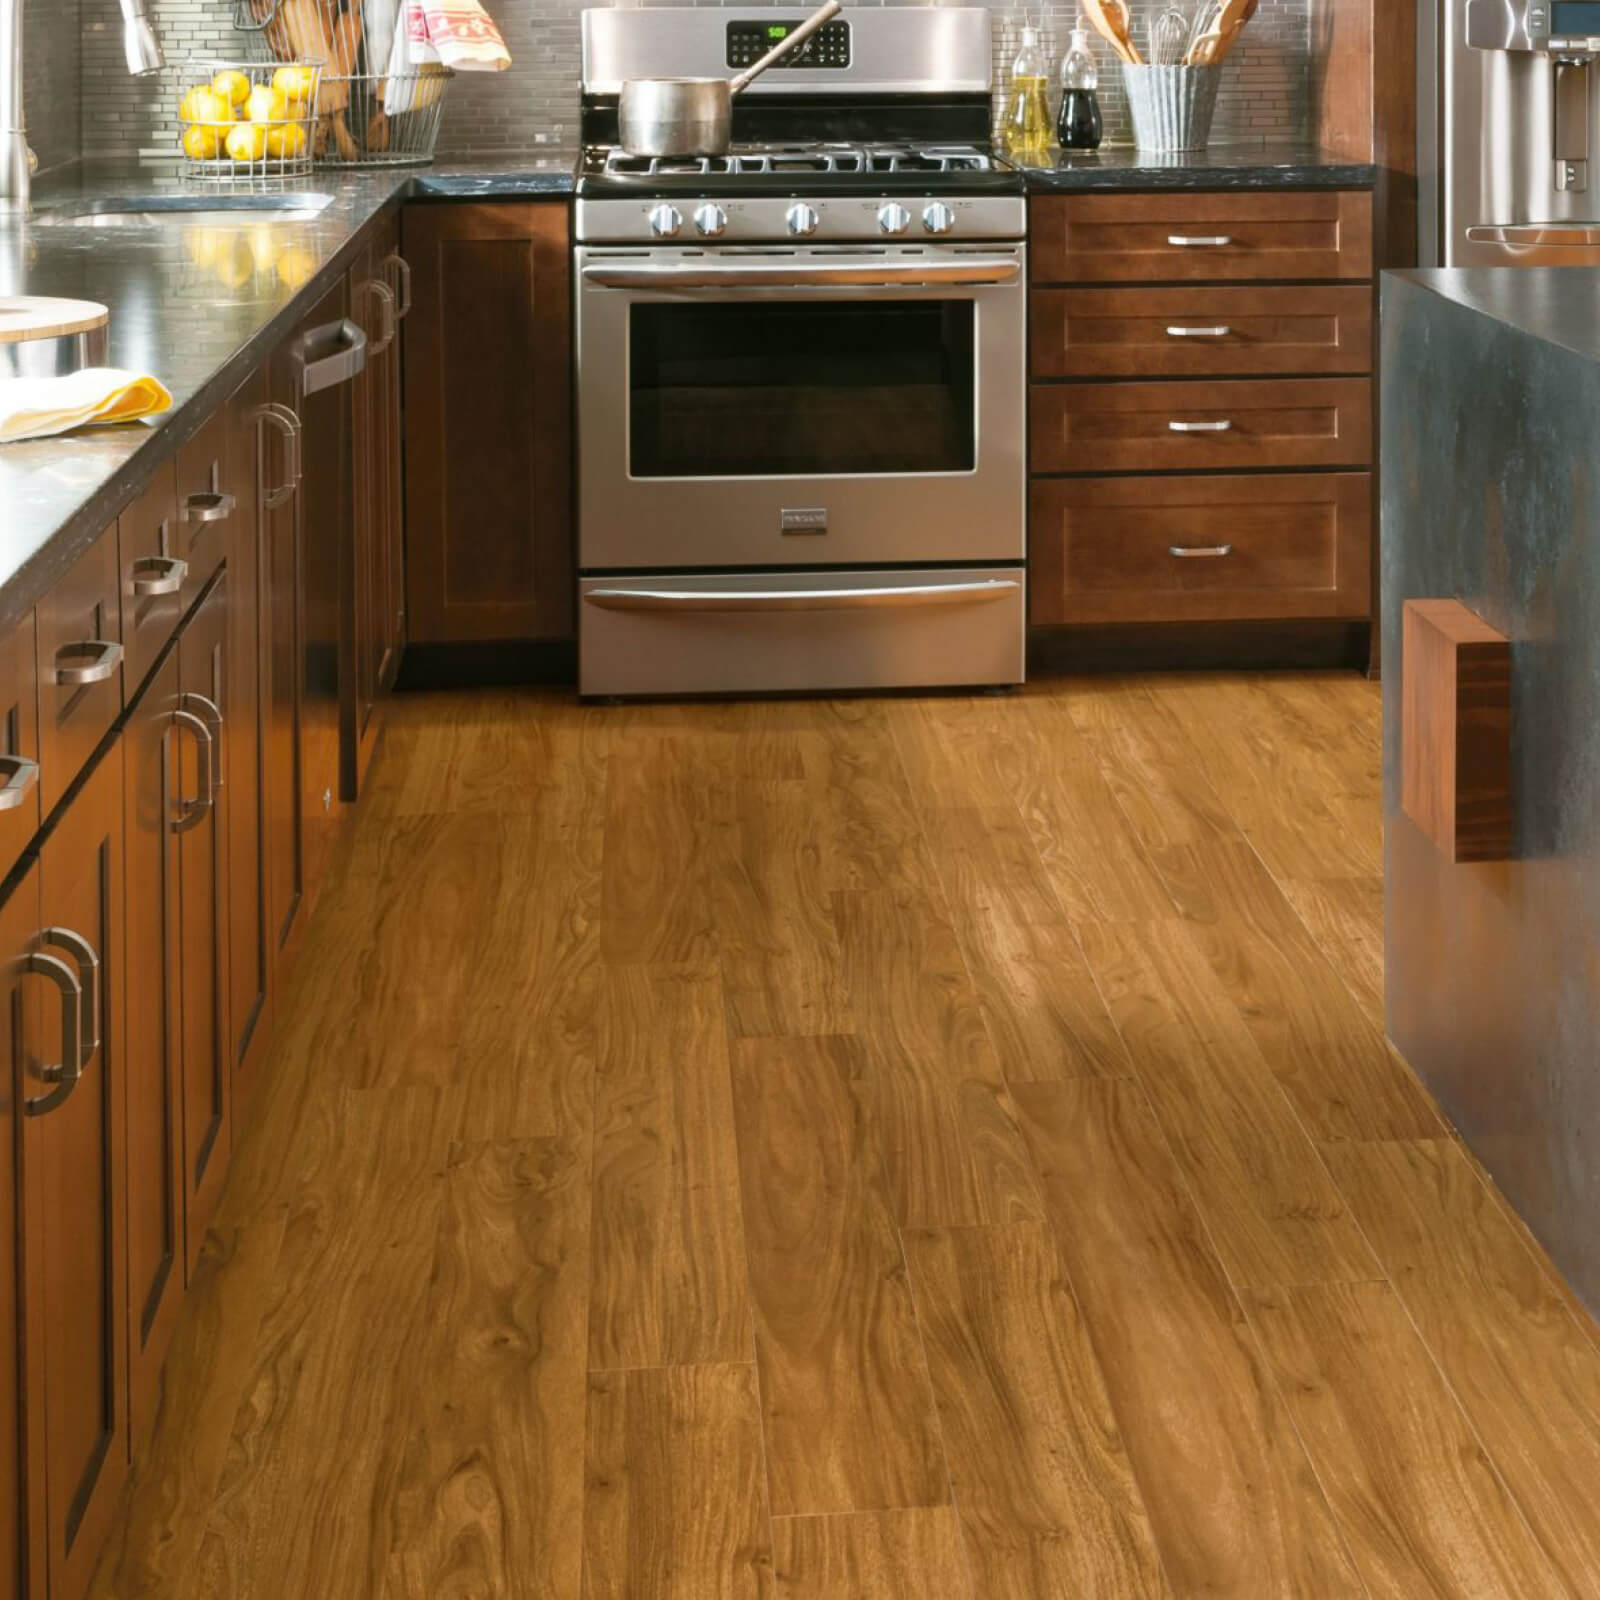 Tropical oak luxury vinyl tile in kitchen | Custom Floors